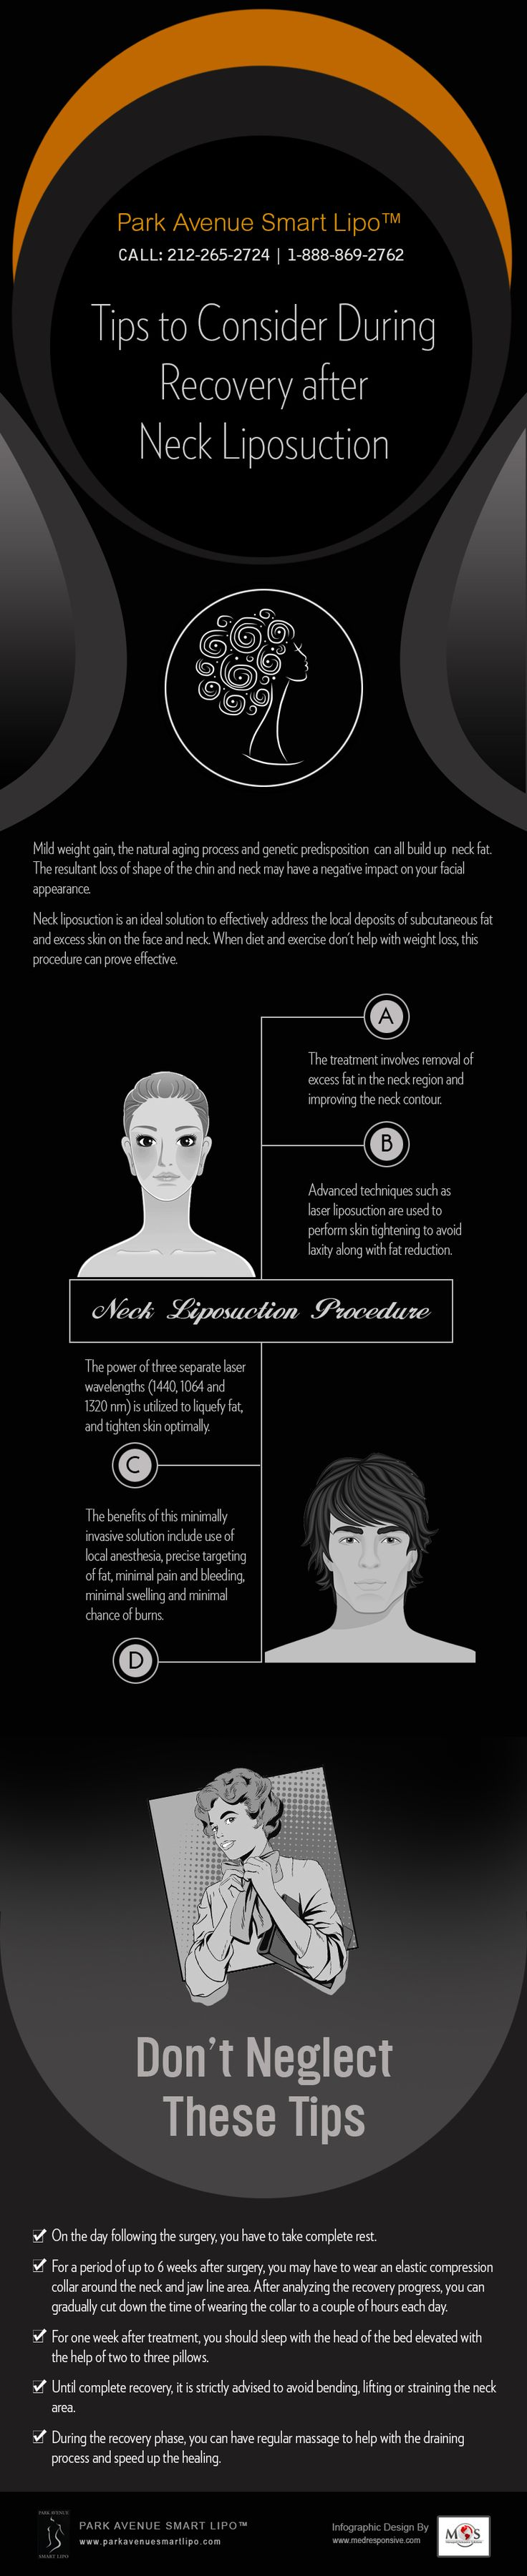 Tips to Consider During Recovery after Neck Liposuction